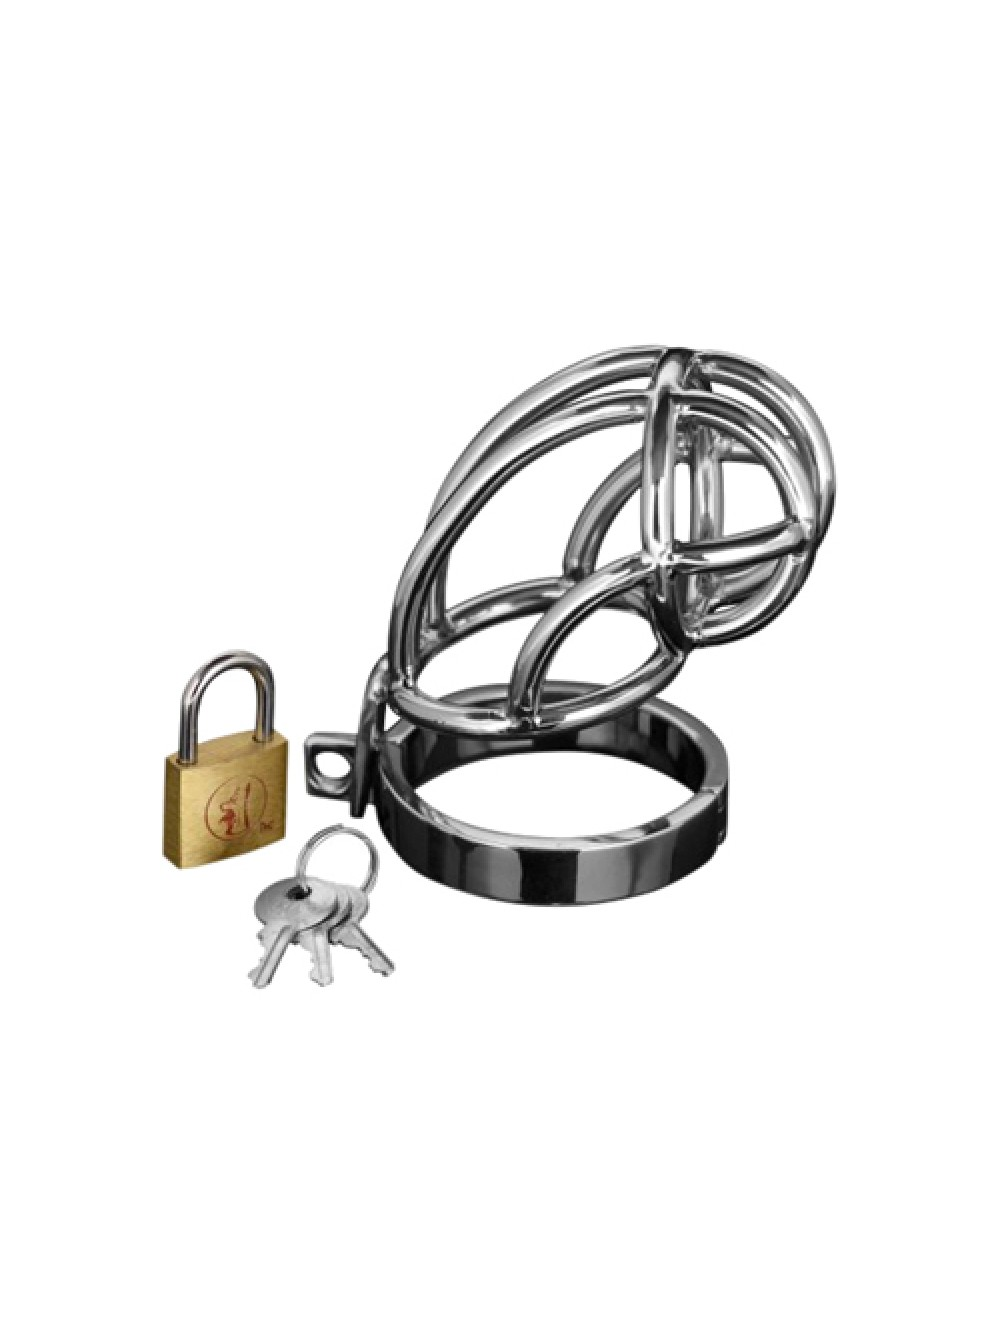 GABBIA DI CASTITA' CAPTUS STEEL LOCKING CHASTITY CAGE